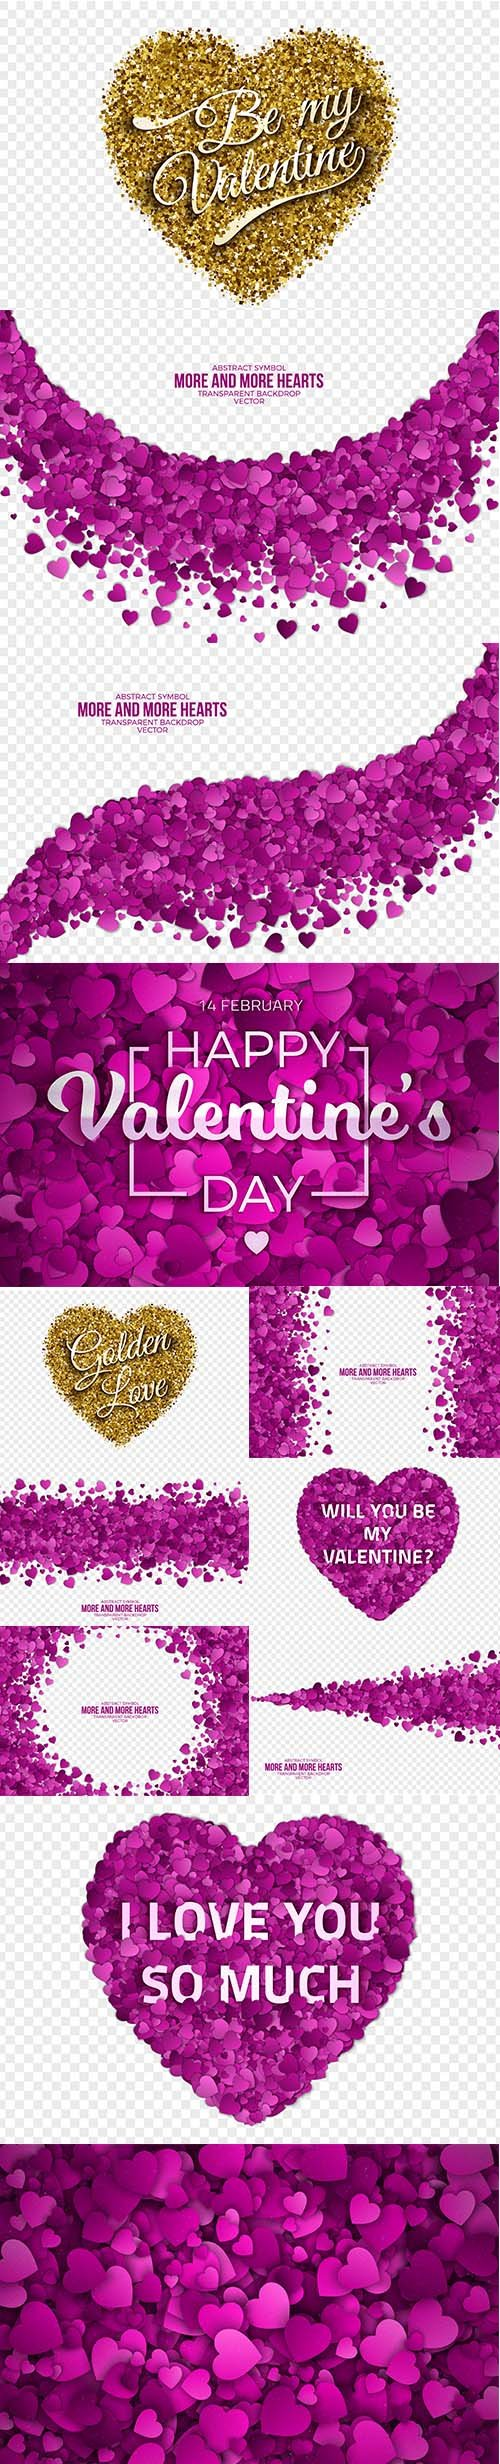 Set of Romantic Valentines Day Illustrations Vol 3